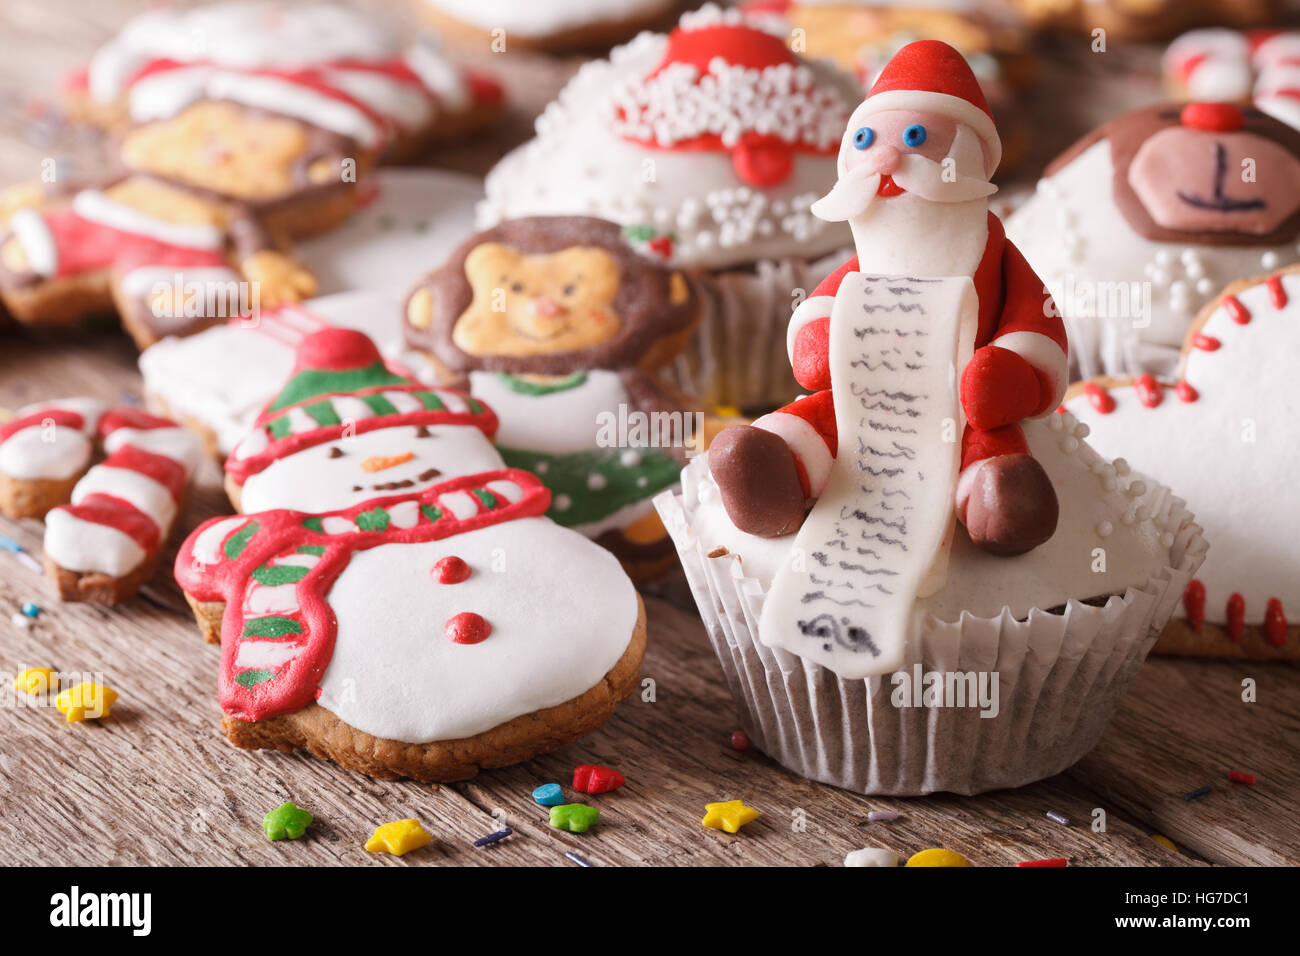 Christmas cupcakes and gingerbread cookies close-up on a wooden table. Horizontal - Stock Image